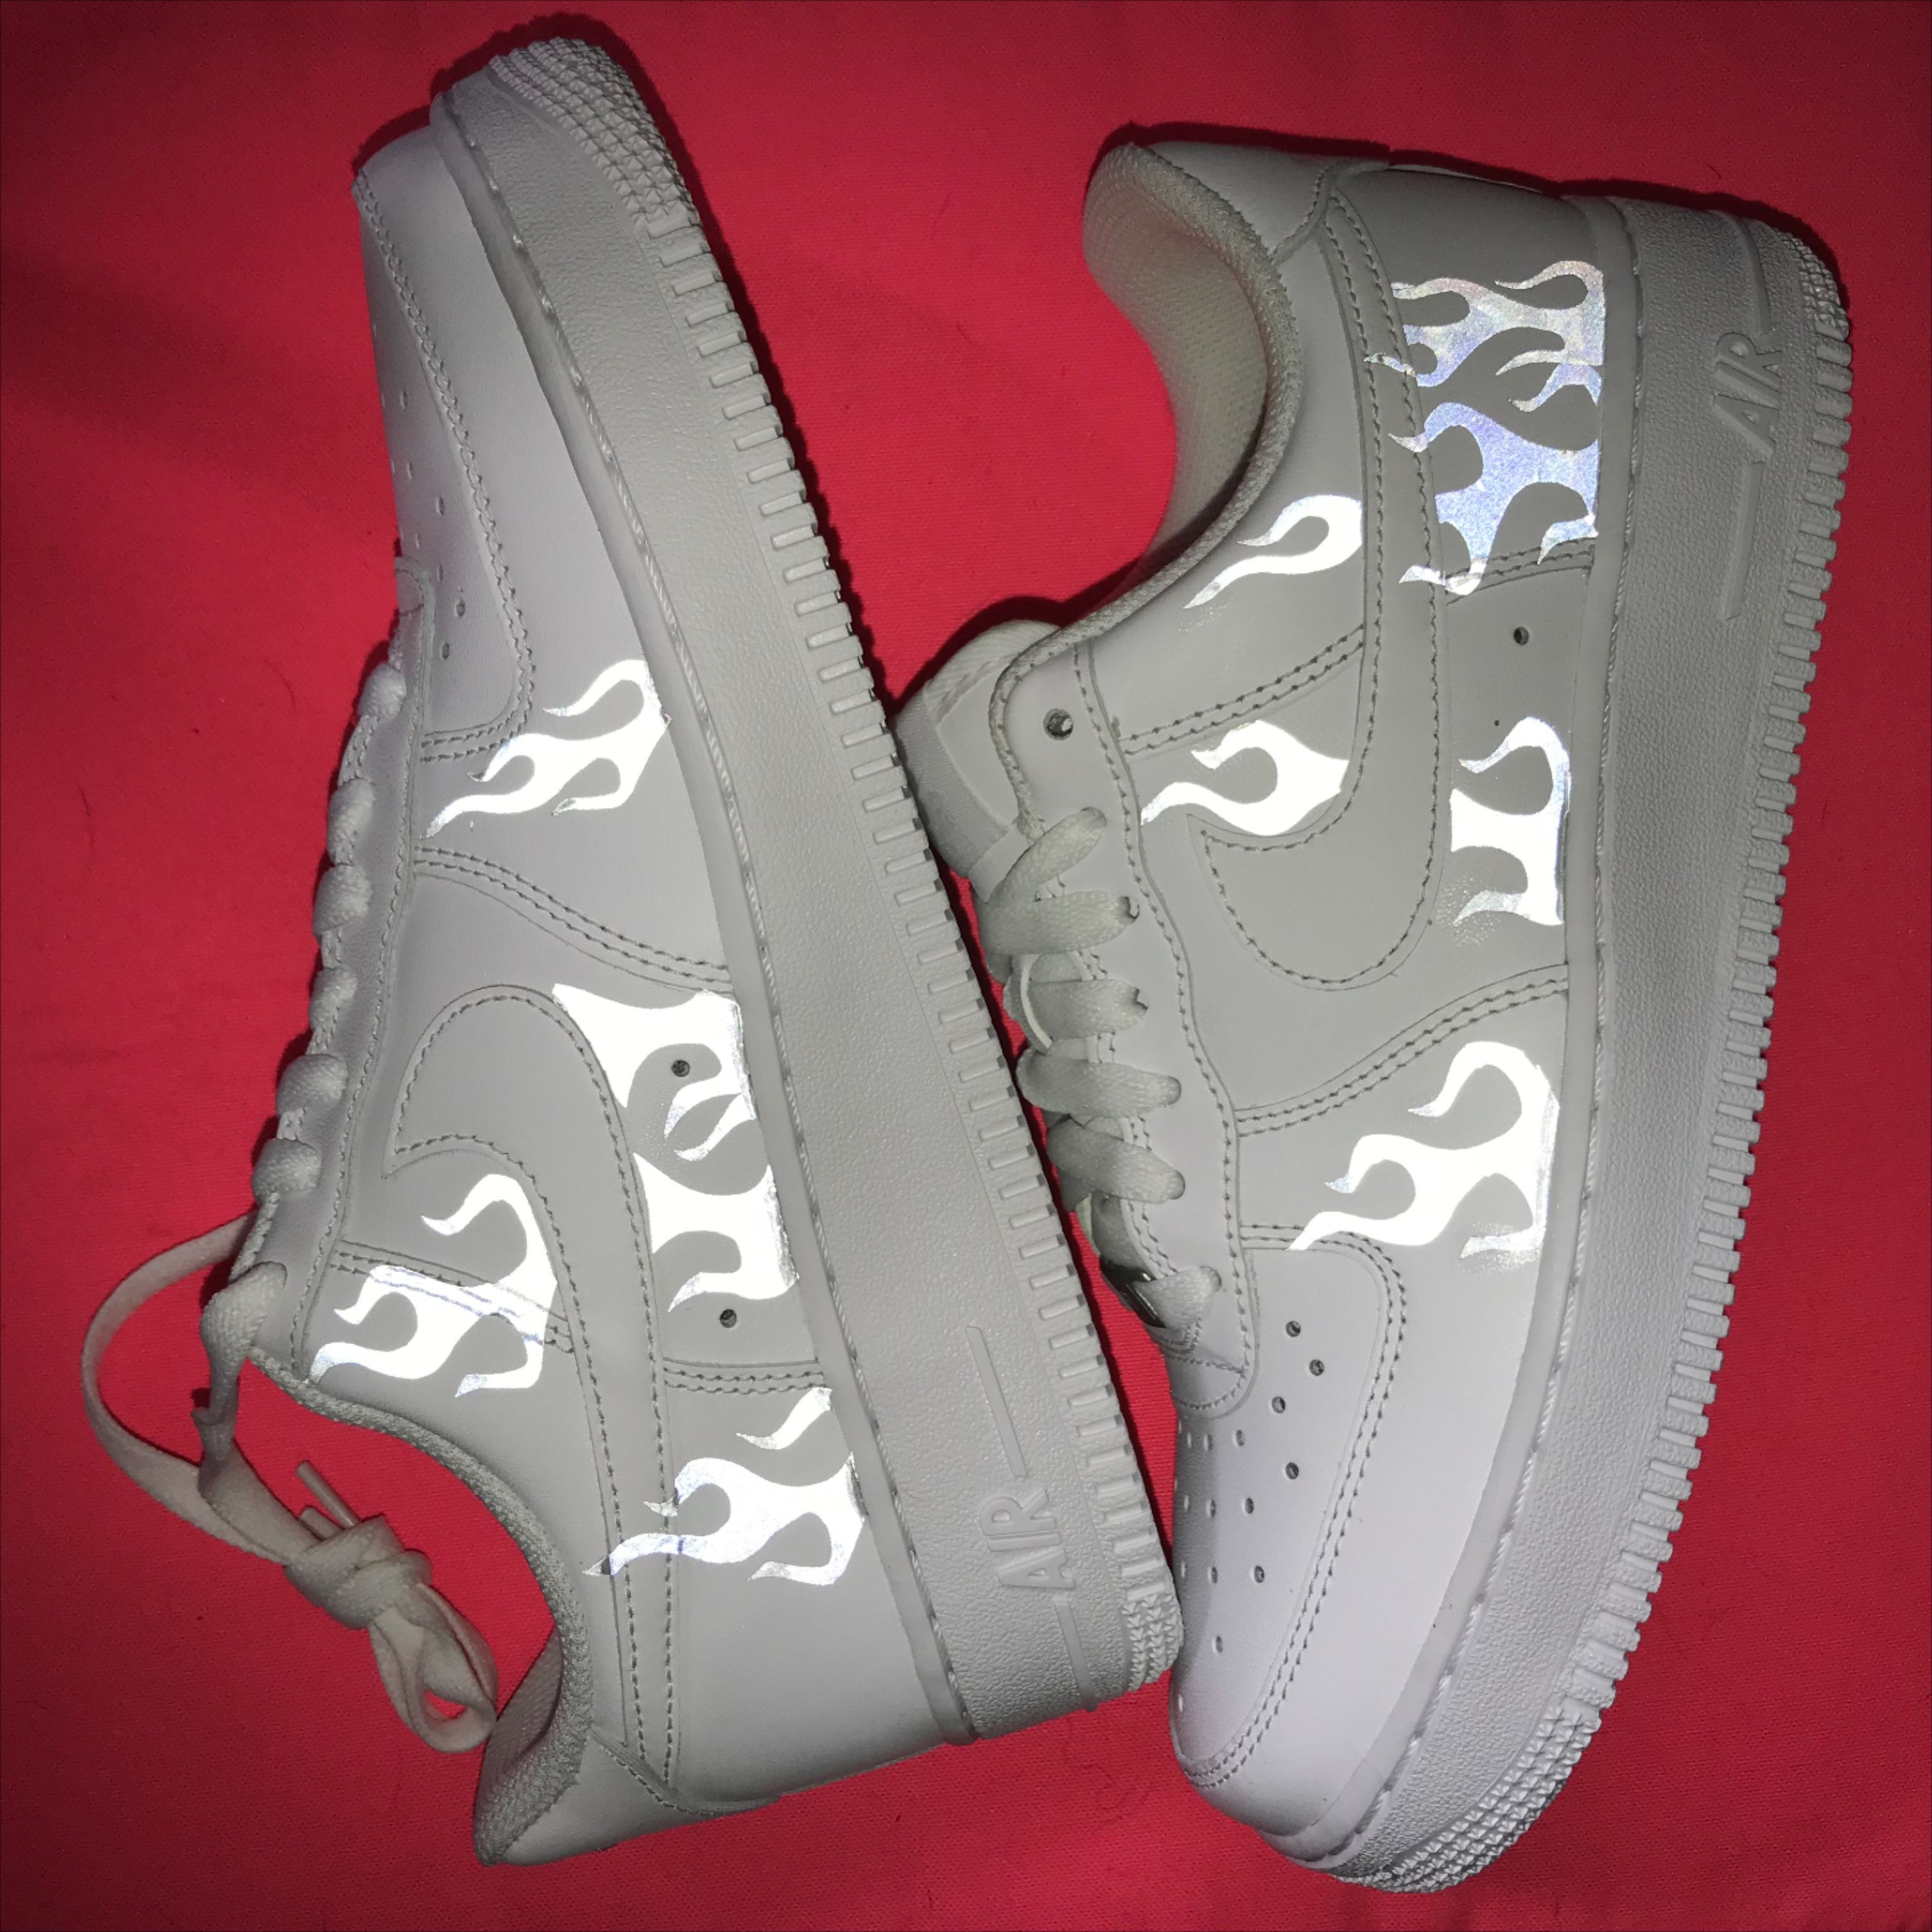 Reflective Flames Custom Air Force 1s Hype Shoes Air Force Nike Air Force Sneaker